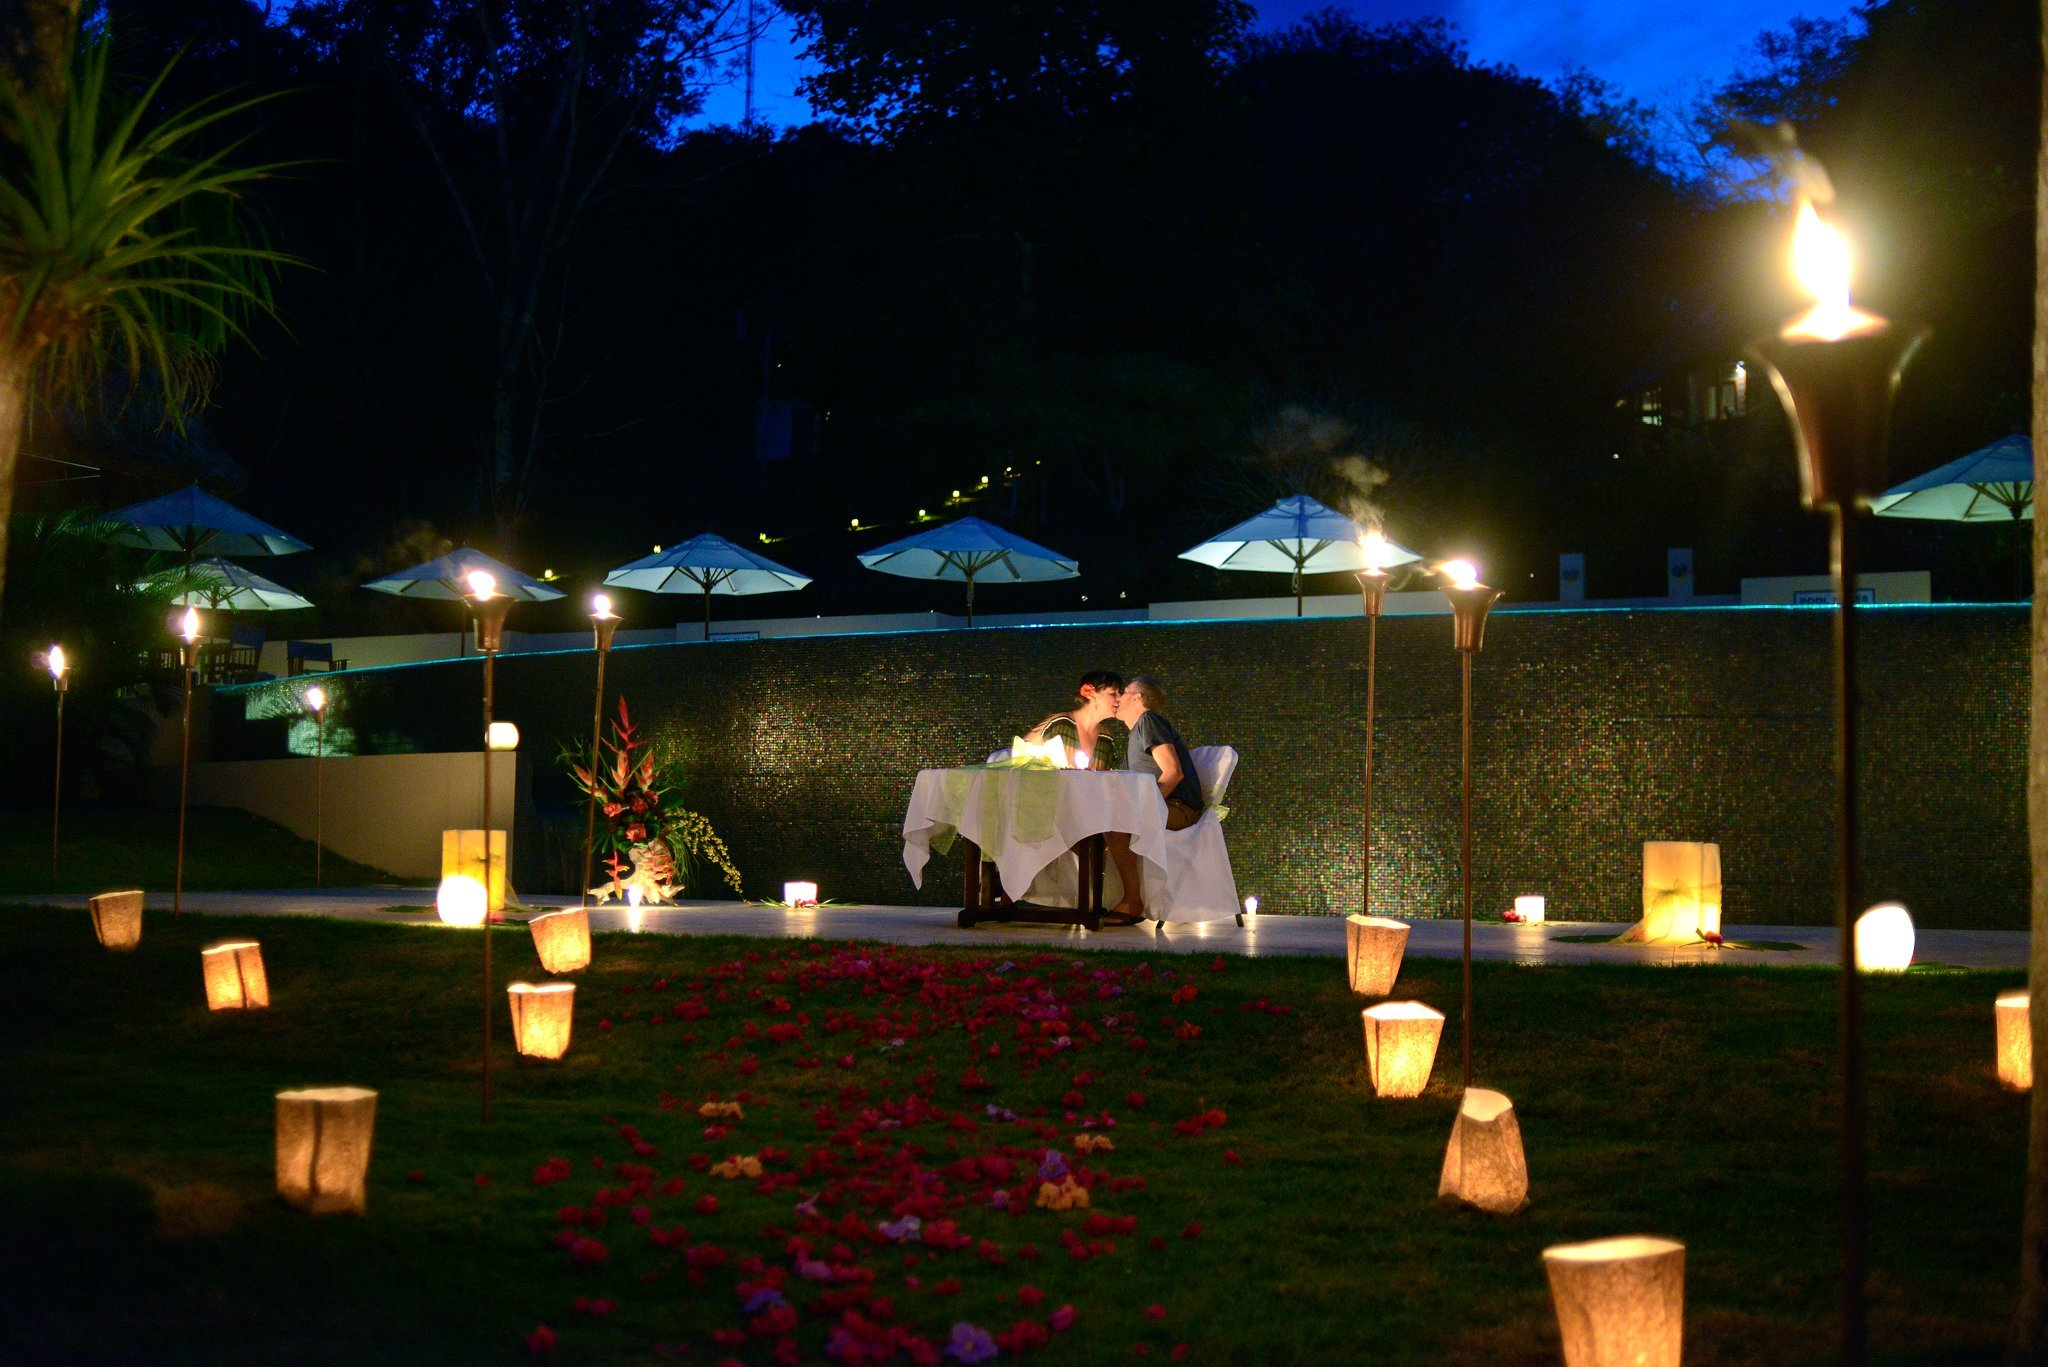 Finding ways to spice up your romantic life? Try a Belize Adventure & Romance Valentine package!